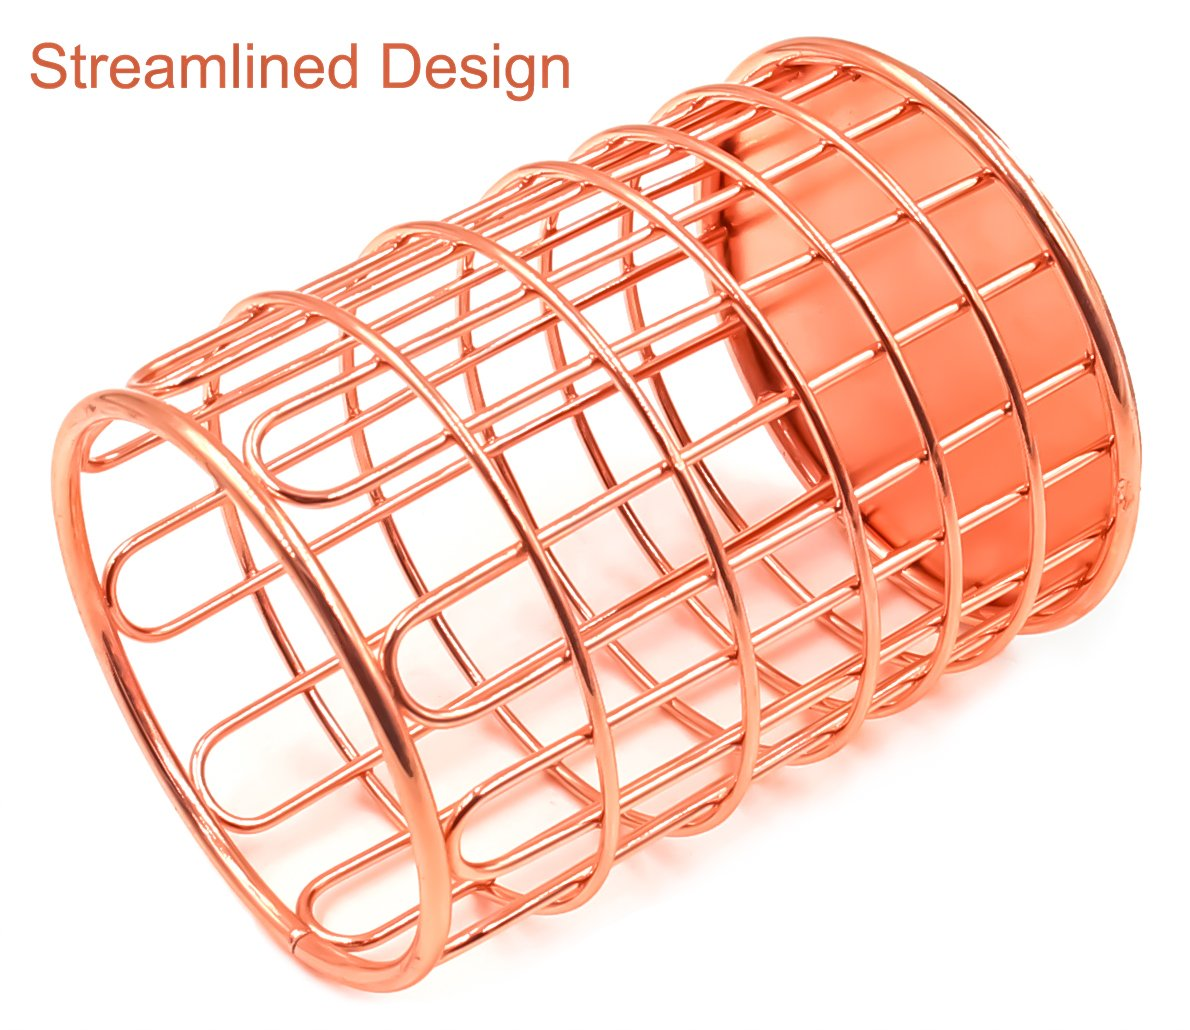 Superbpag Wire Metal Desktop Pencil Holder, Set of 2, Rose Gold by Superbpag (Image #5)